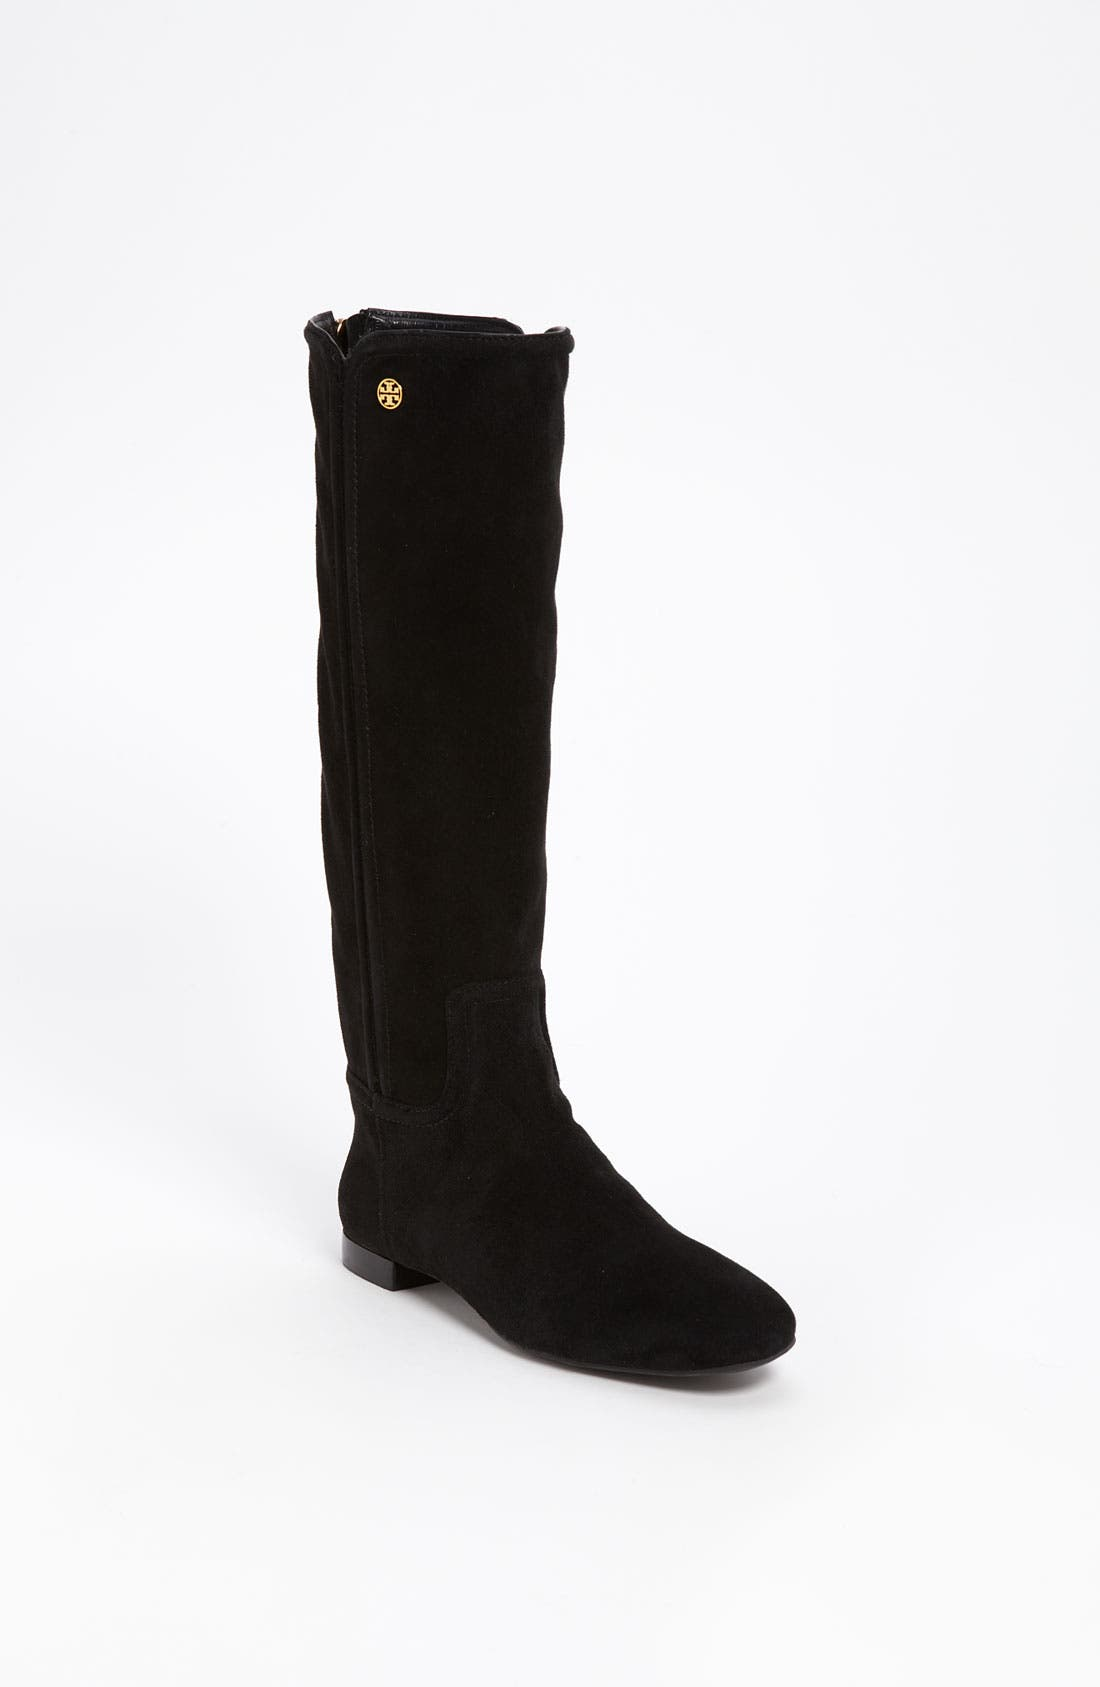 Alternate Image 1 Selected - Tory Burch 'Irene' Tall Boot